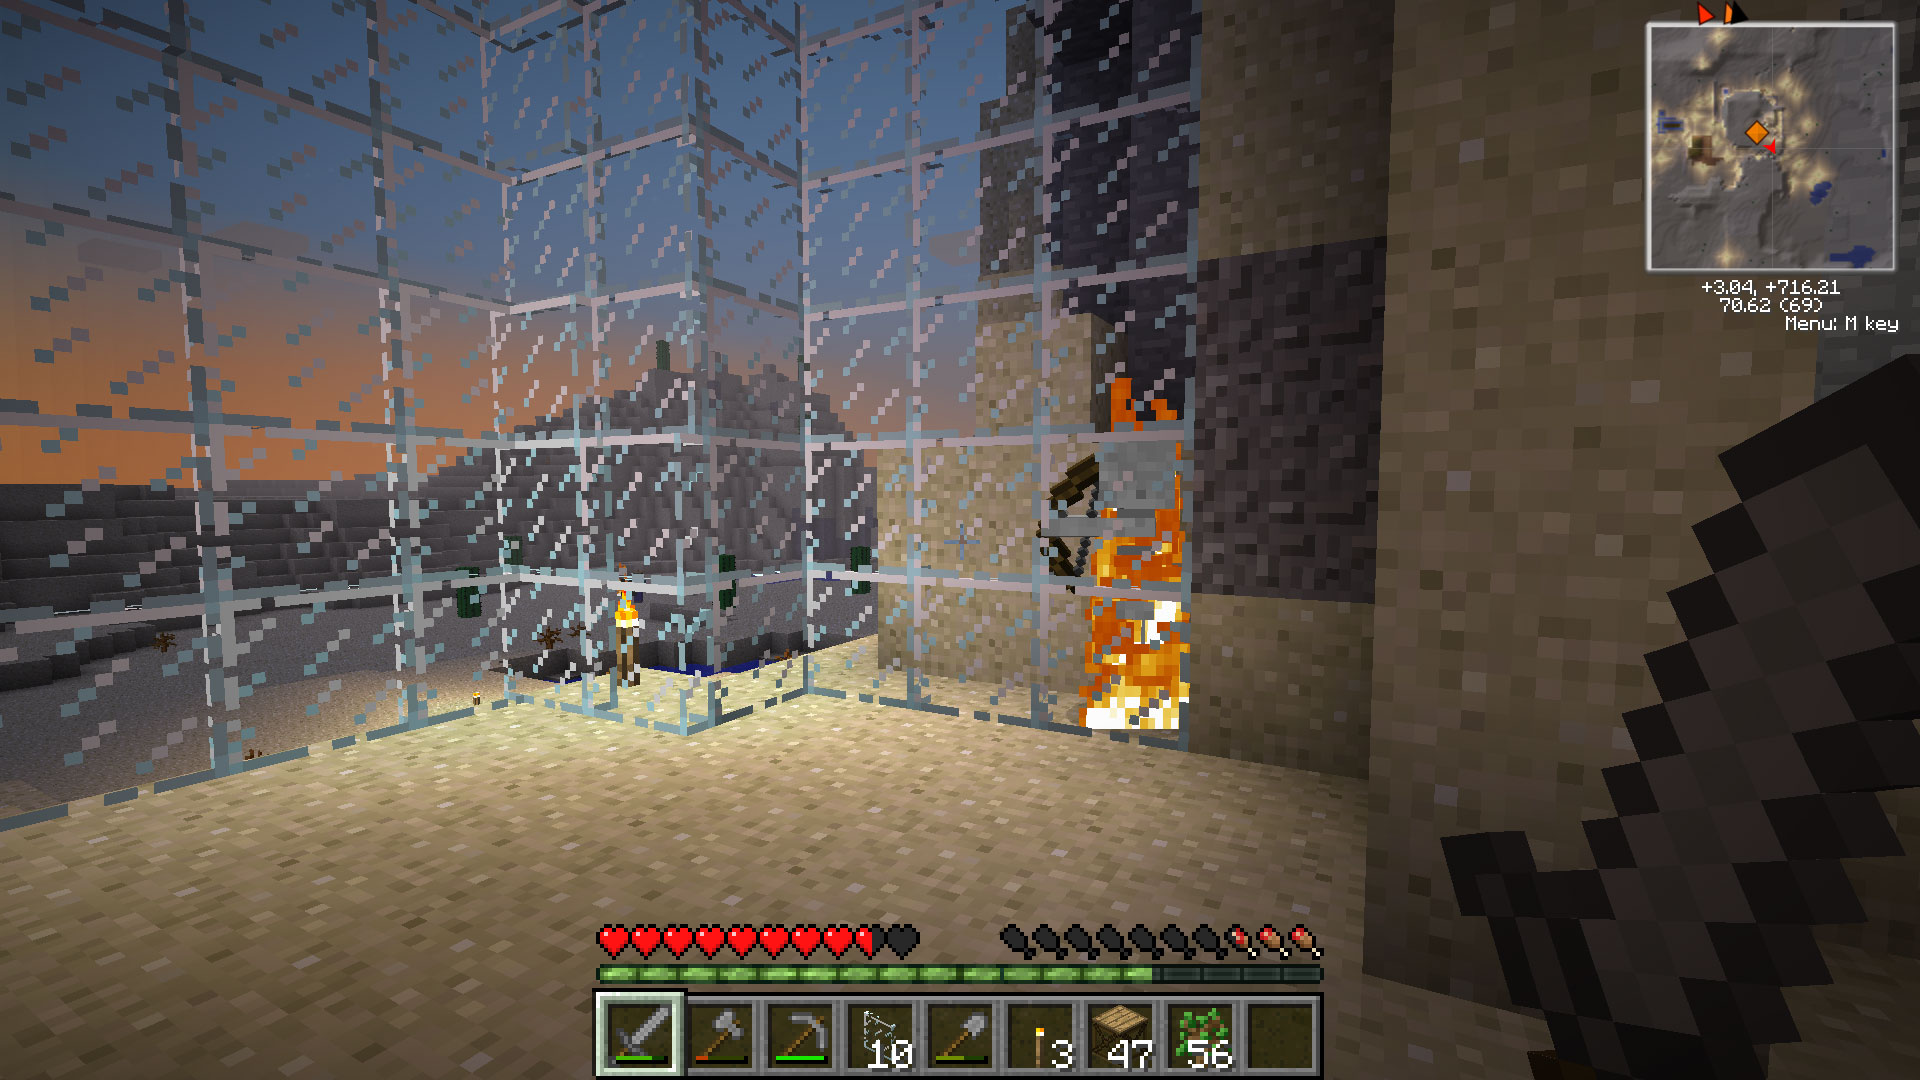 Look. The glass wall is working already! VICTORY!